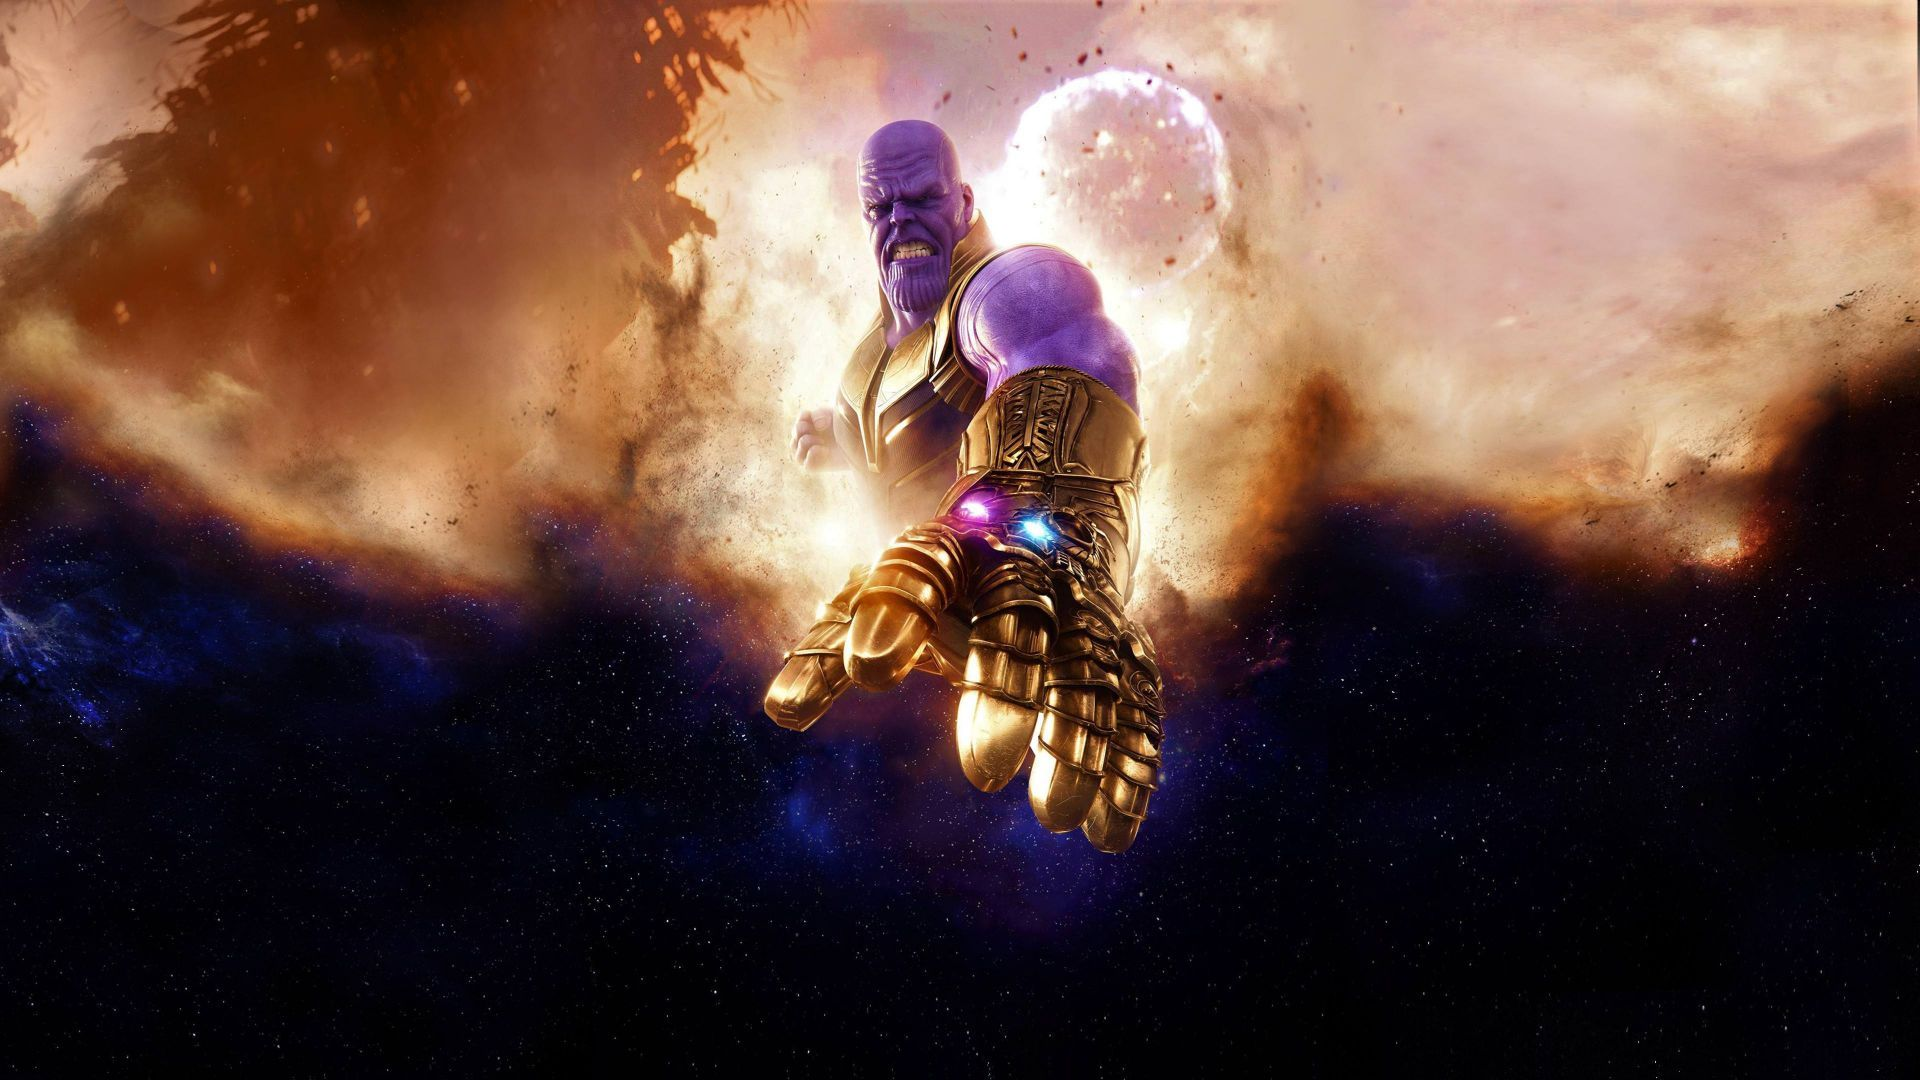 Download Wallpapers Of Thanos Avengers Infinity War 4k Movies 13029 Available In Hd 4k Resolutions For D Avengers Infinity War War Artwork Infinity War